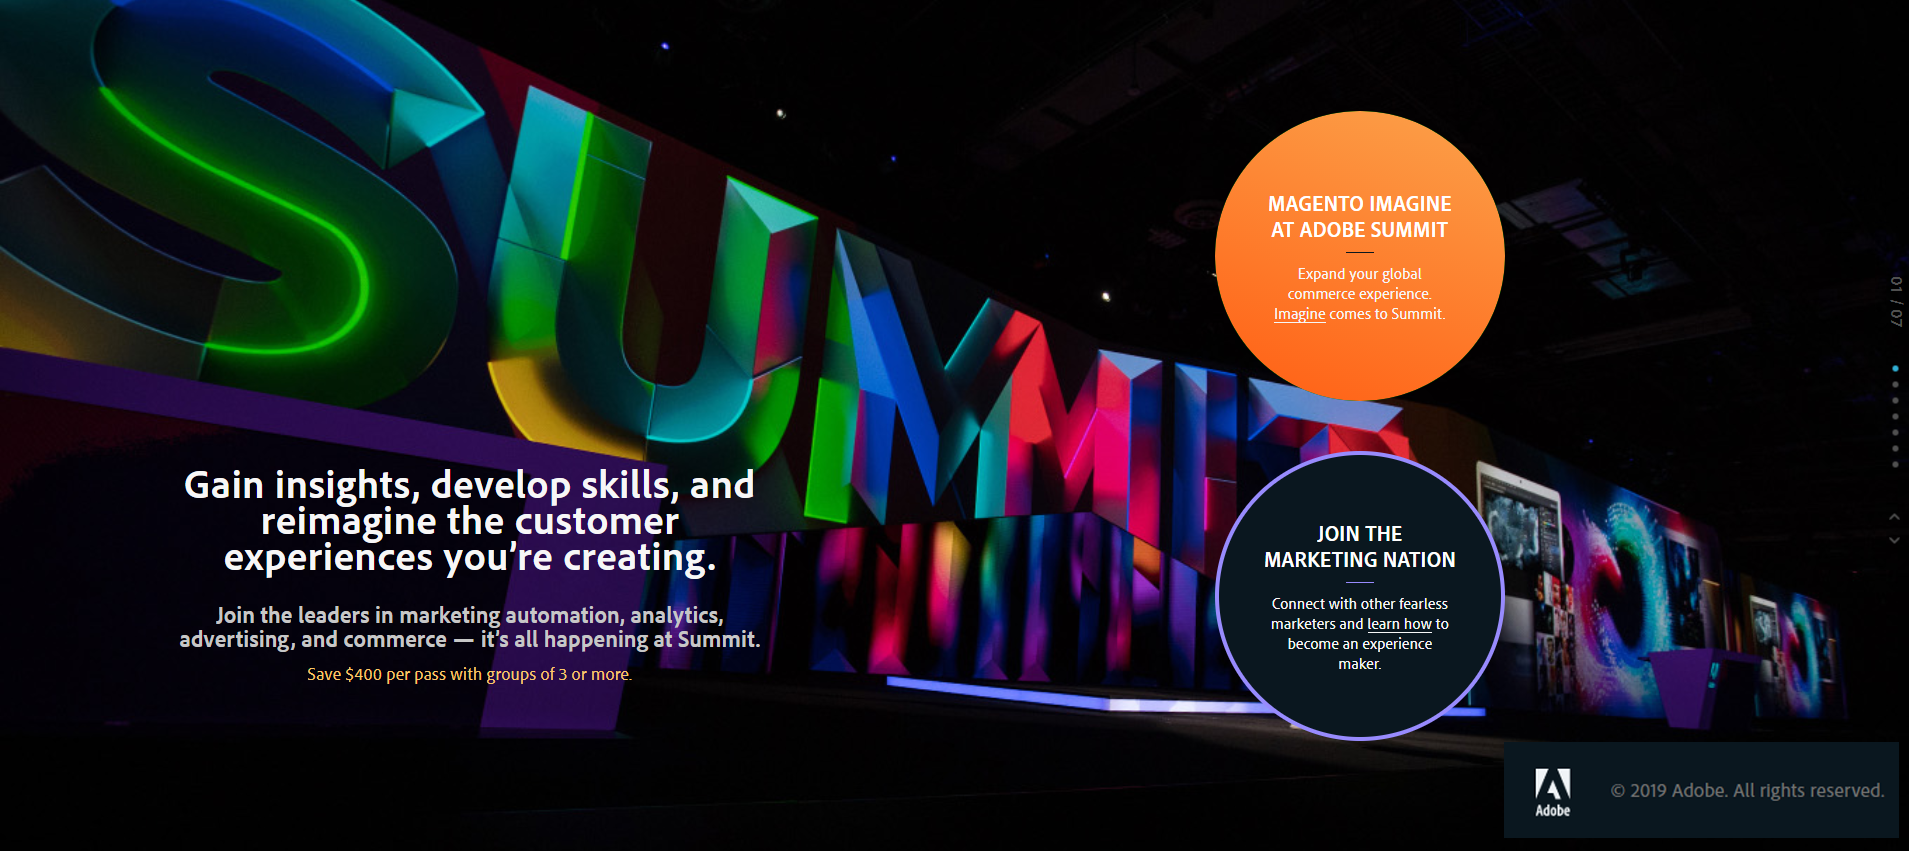 Adobe Summit 2020, Las Vegas, the digital conference.